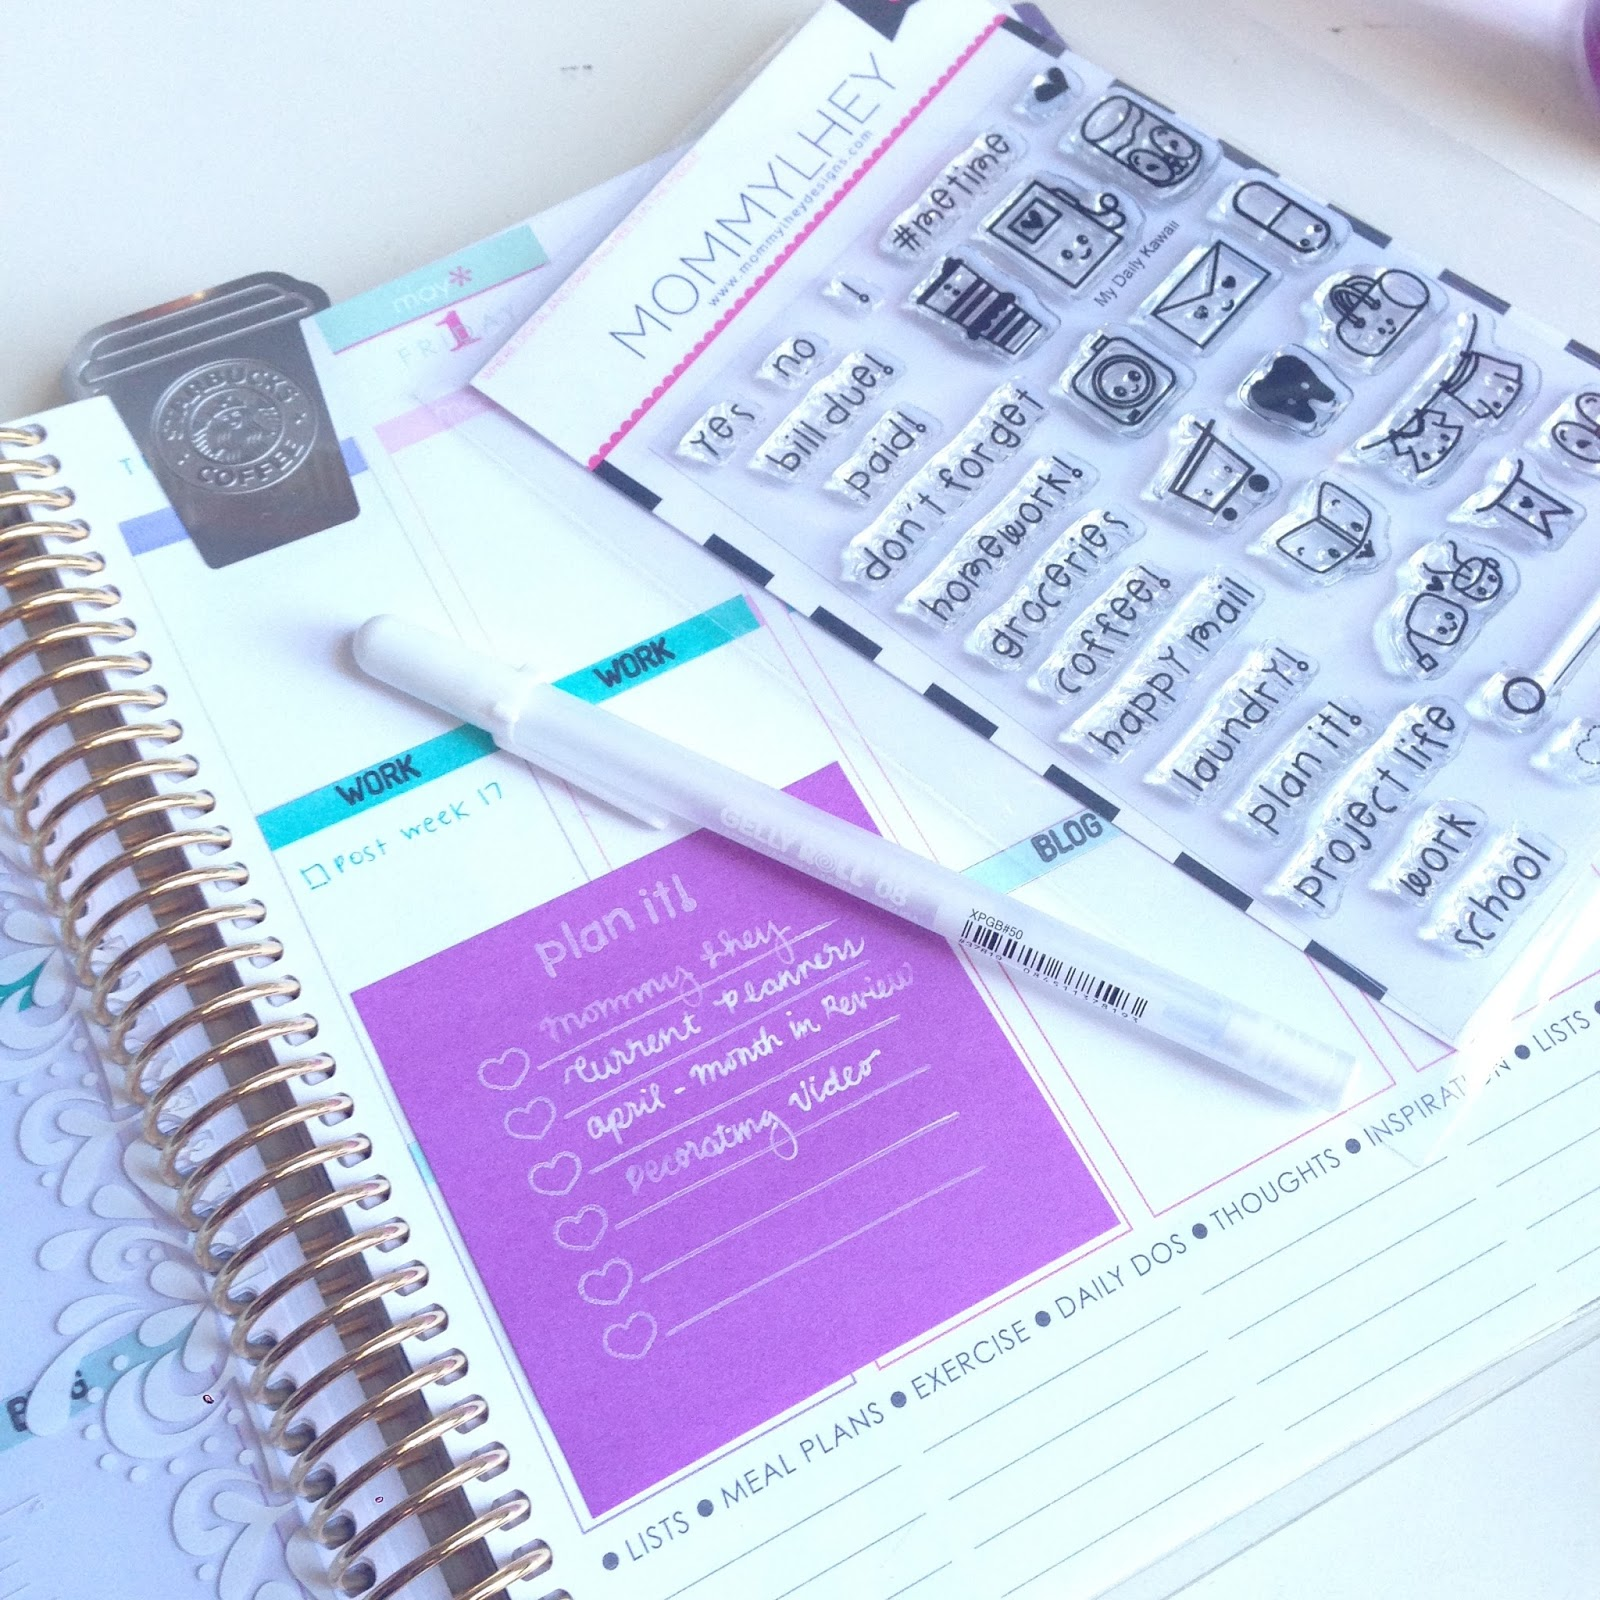 Kikki K Personal Planner Class//Lesson Script Functional Planner Stickers in Cool Travelers Notebook Warm or Black Color Palette for Erin Condren